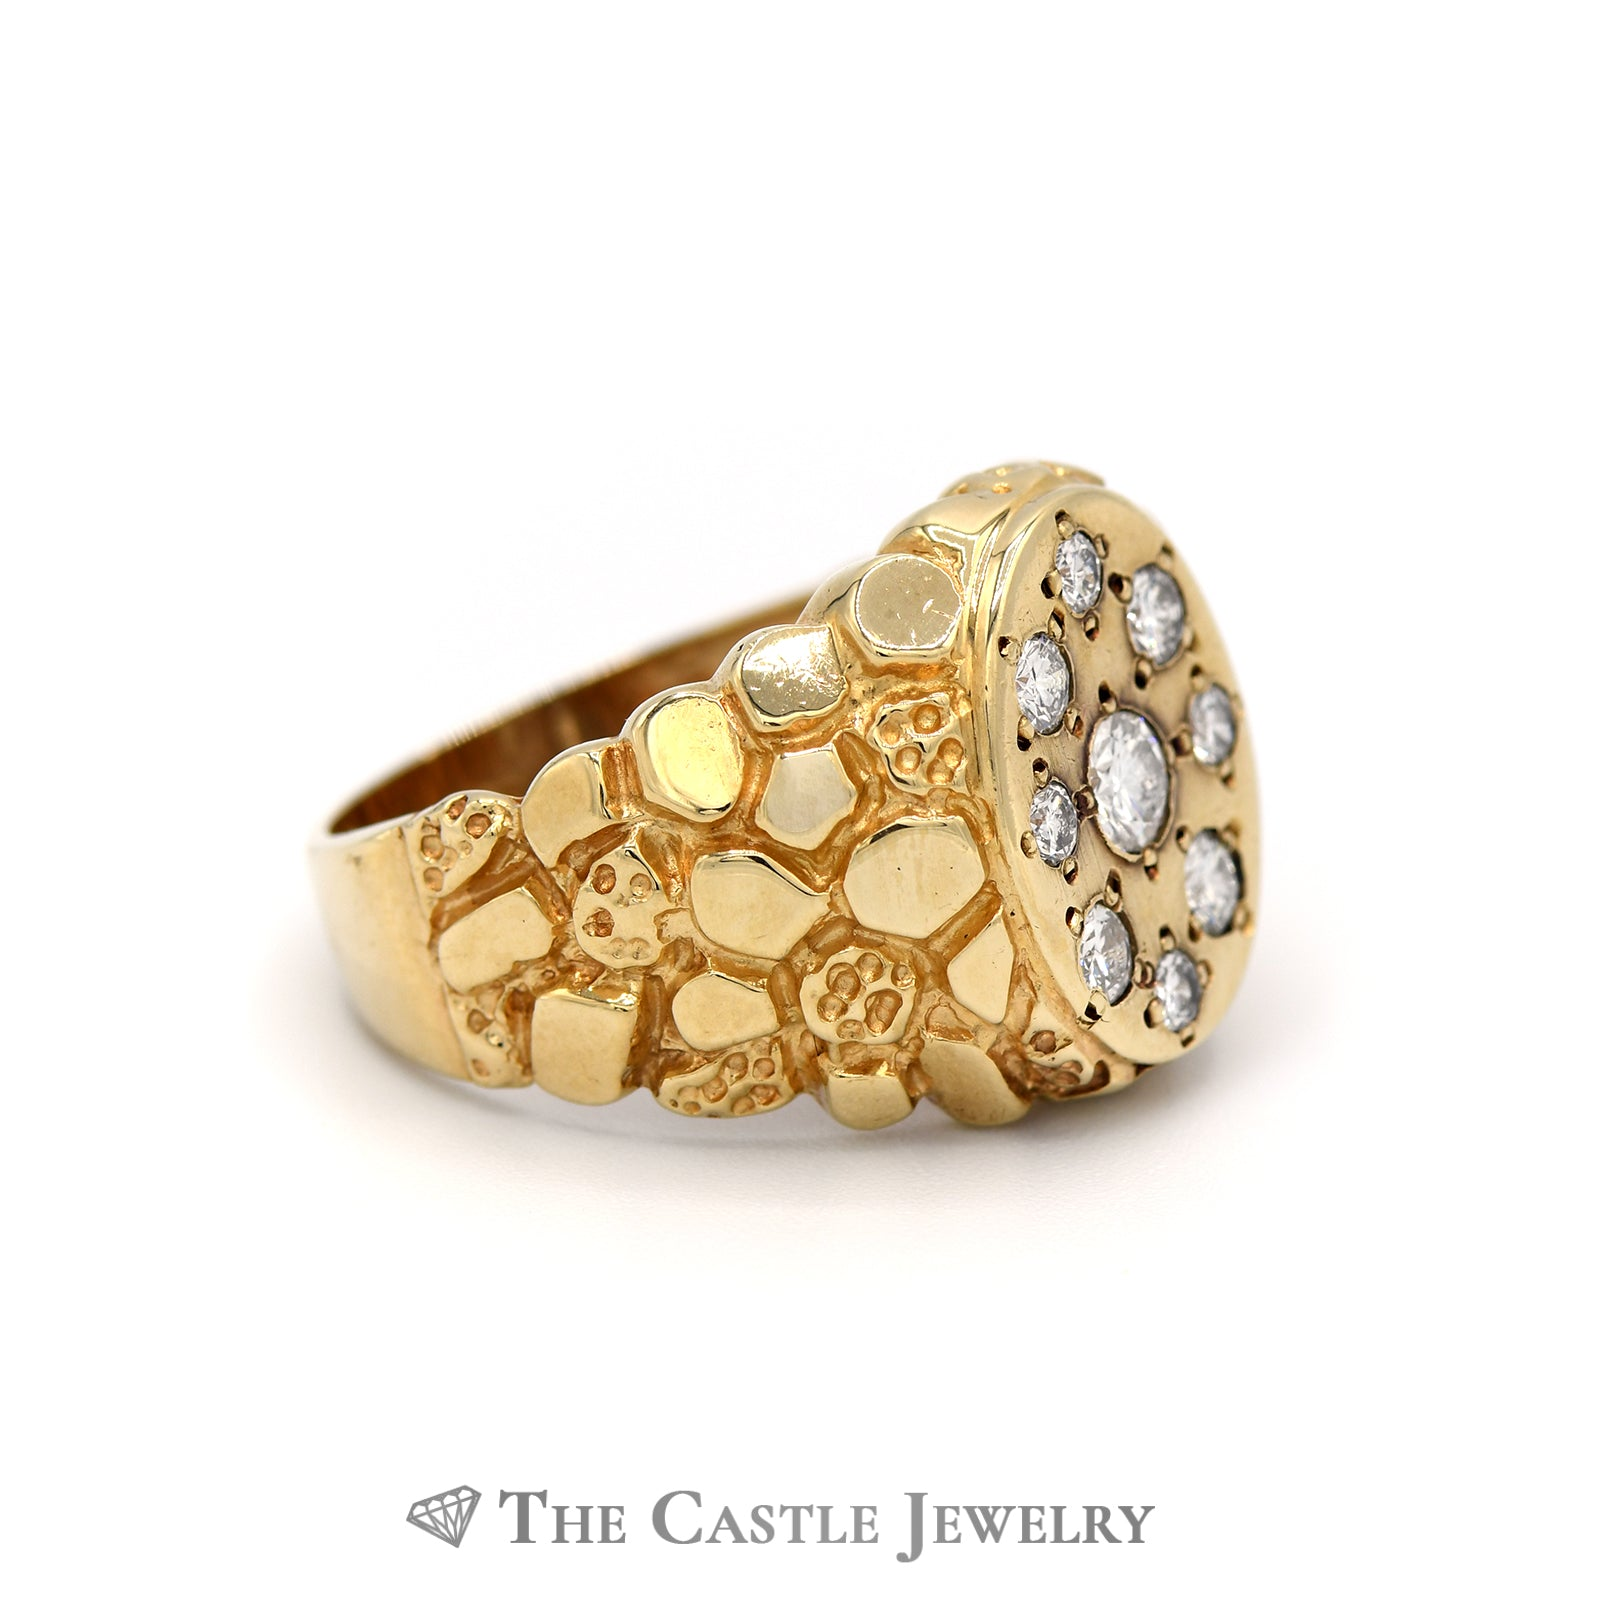 Gent's Oval .75cttw Oval Cluster Ring with Nugget Sides in 14K Yellow Gold-2